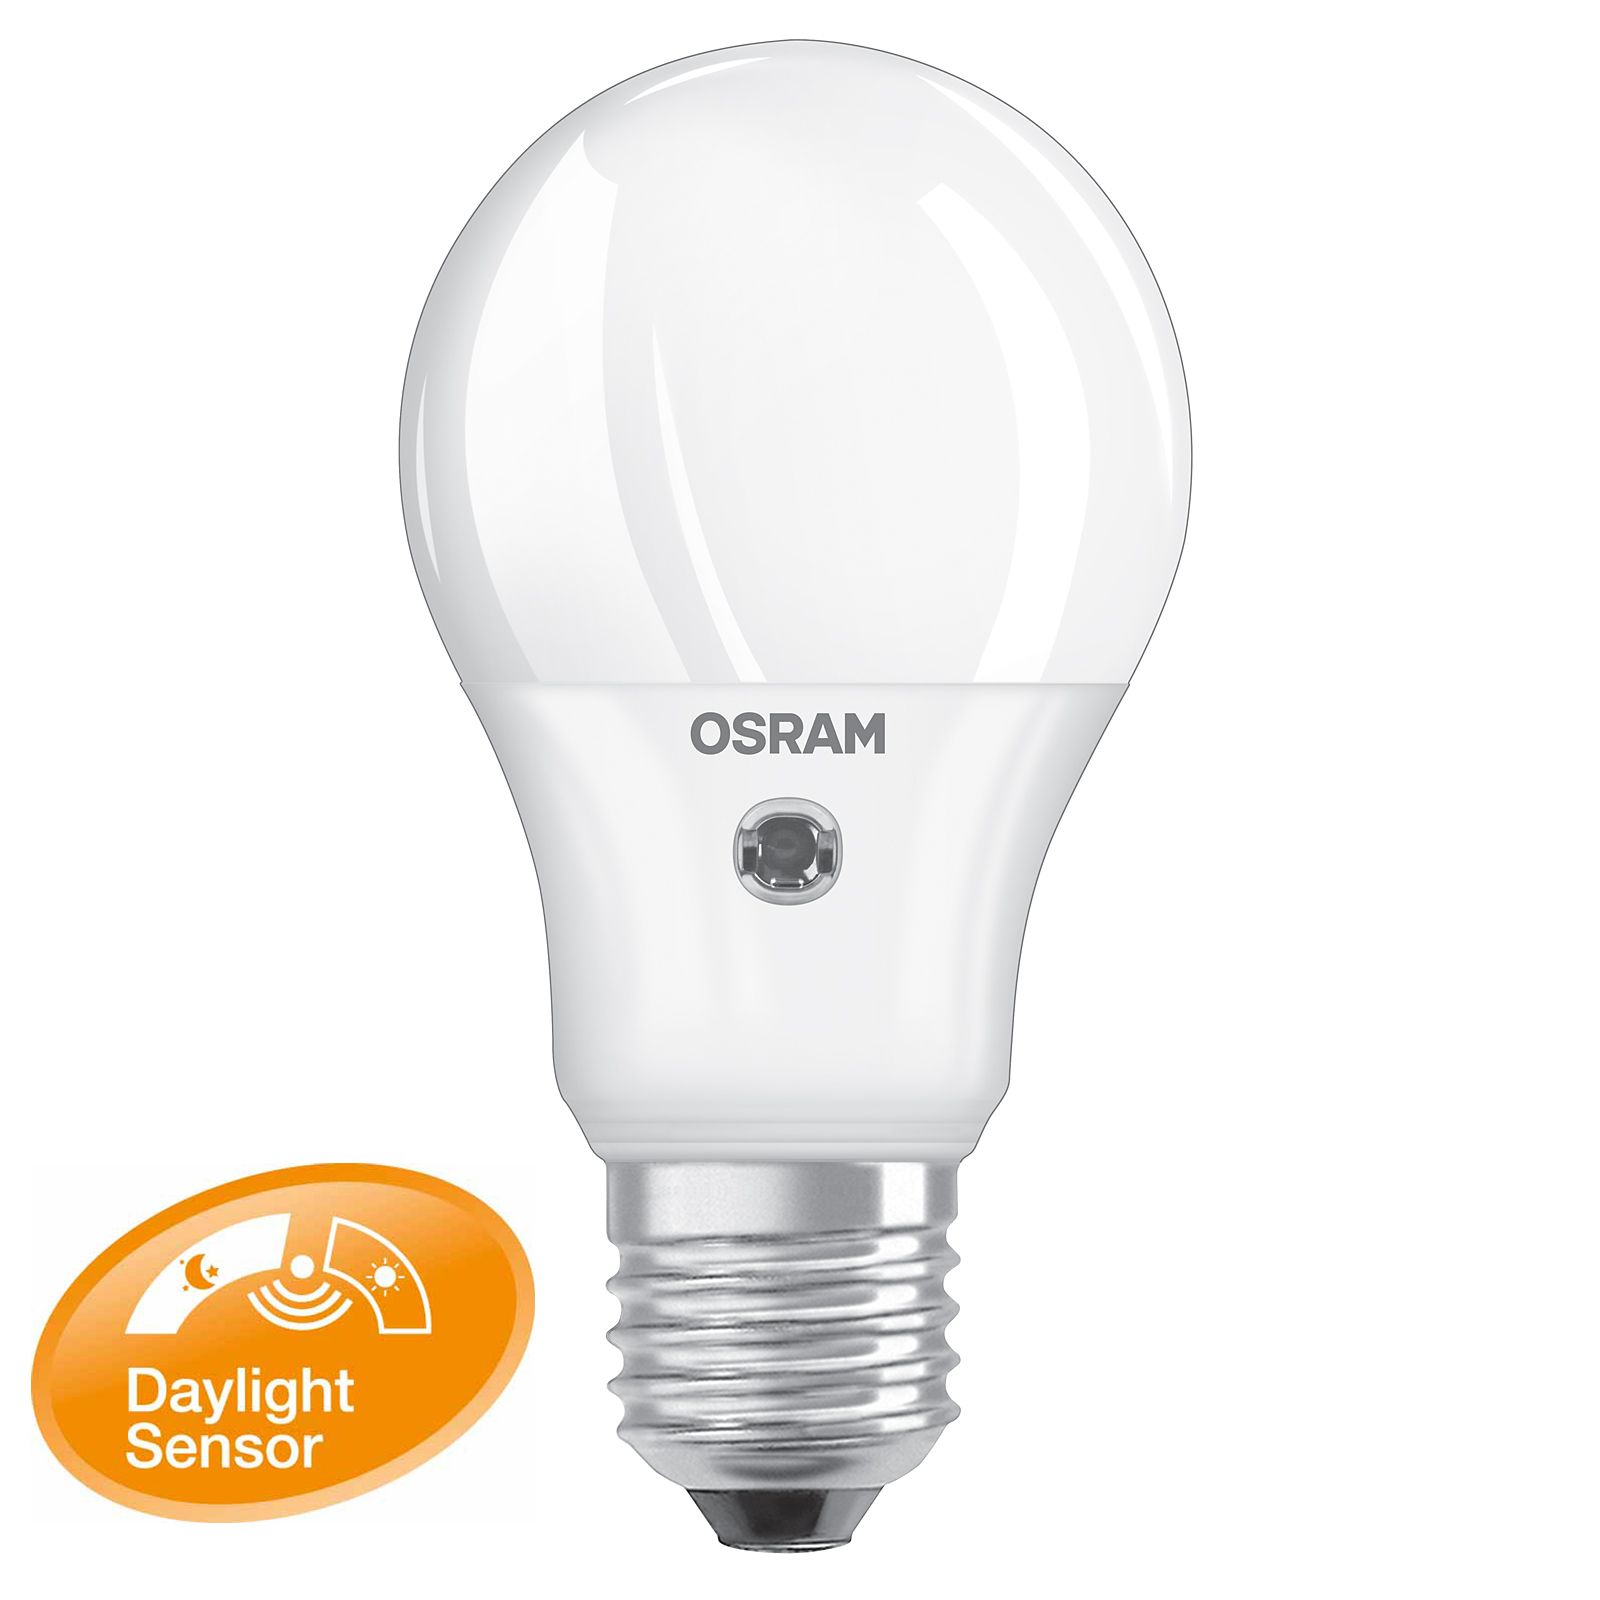 led lampen osram daylight sensor led lampen mit. Black Bedroom Furniture Sets. Home Design Ideas